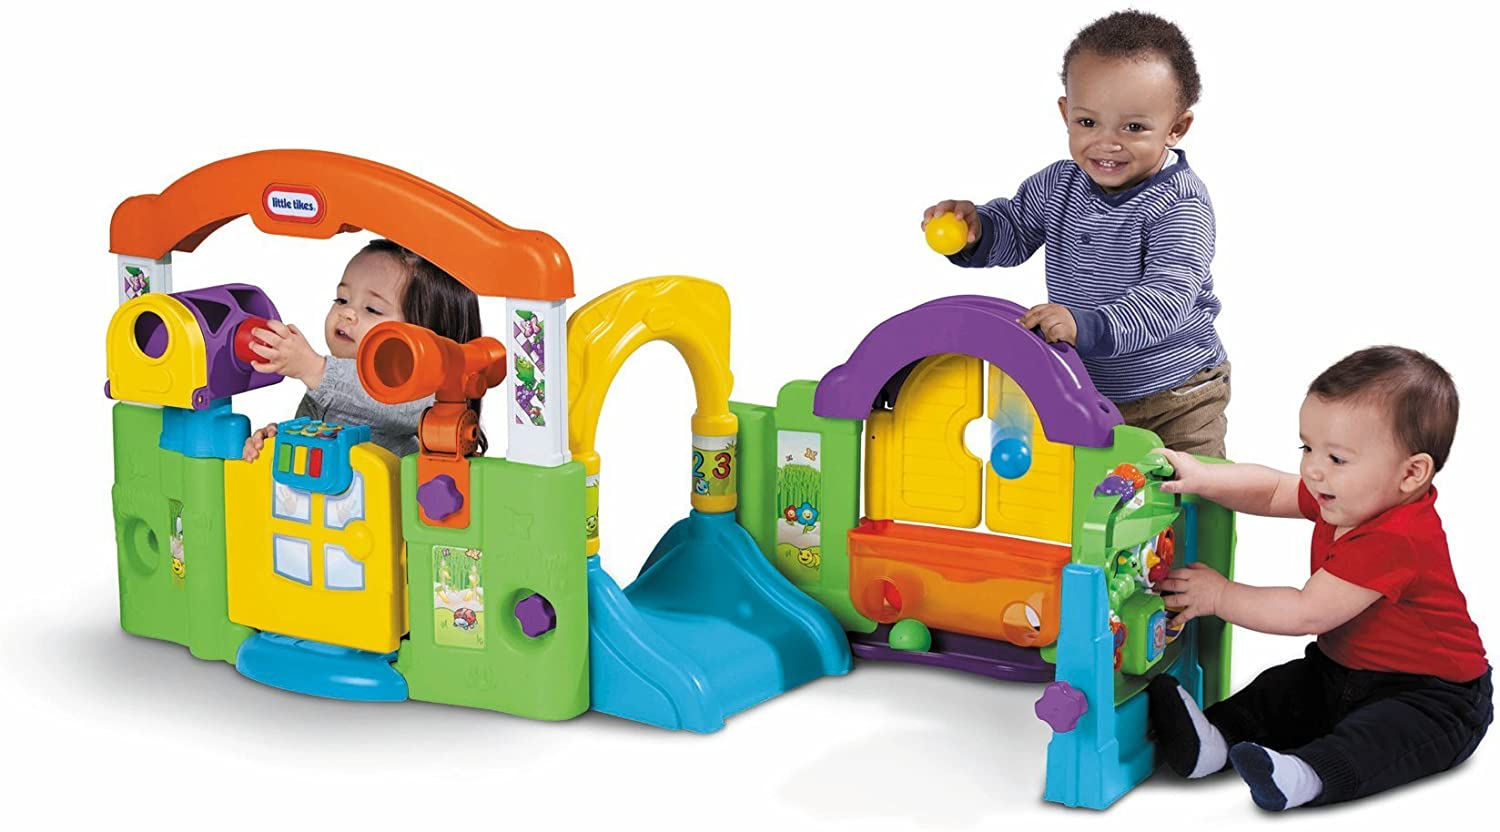 Maison little tikes - Maison de jardin little tikes colombes ...